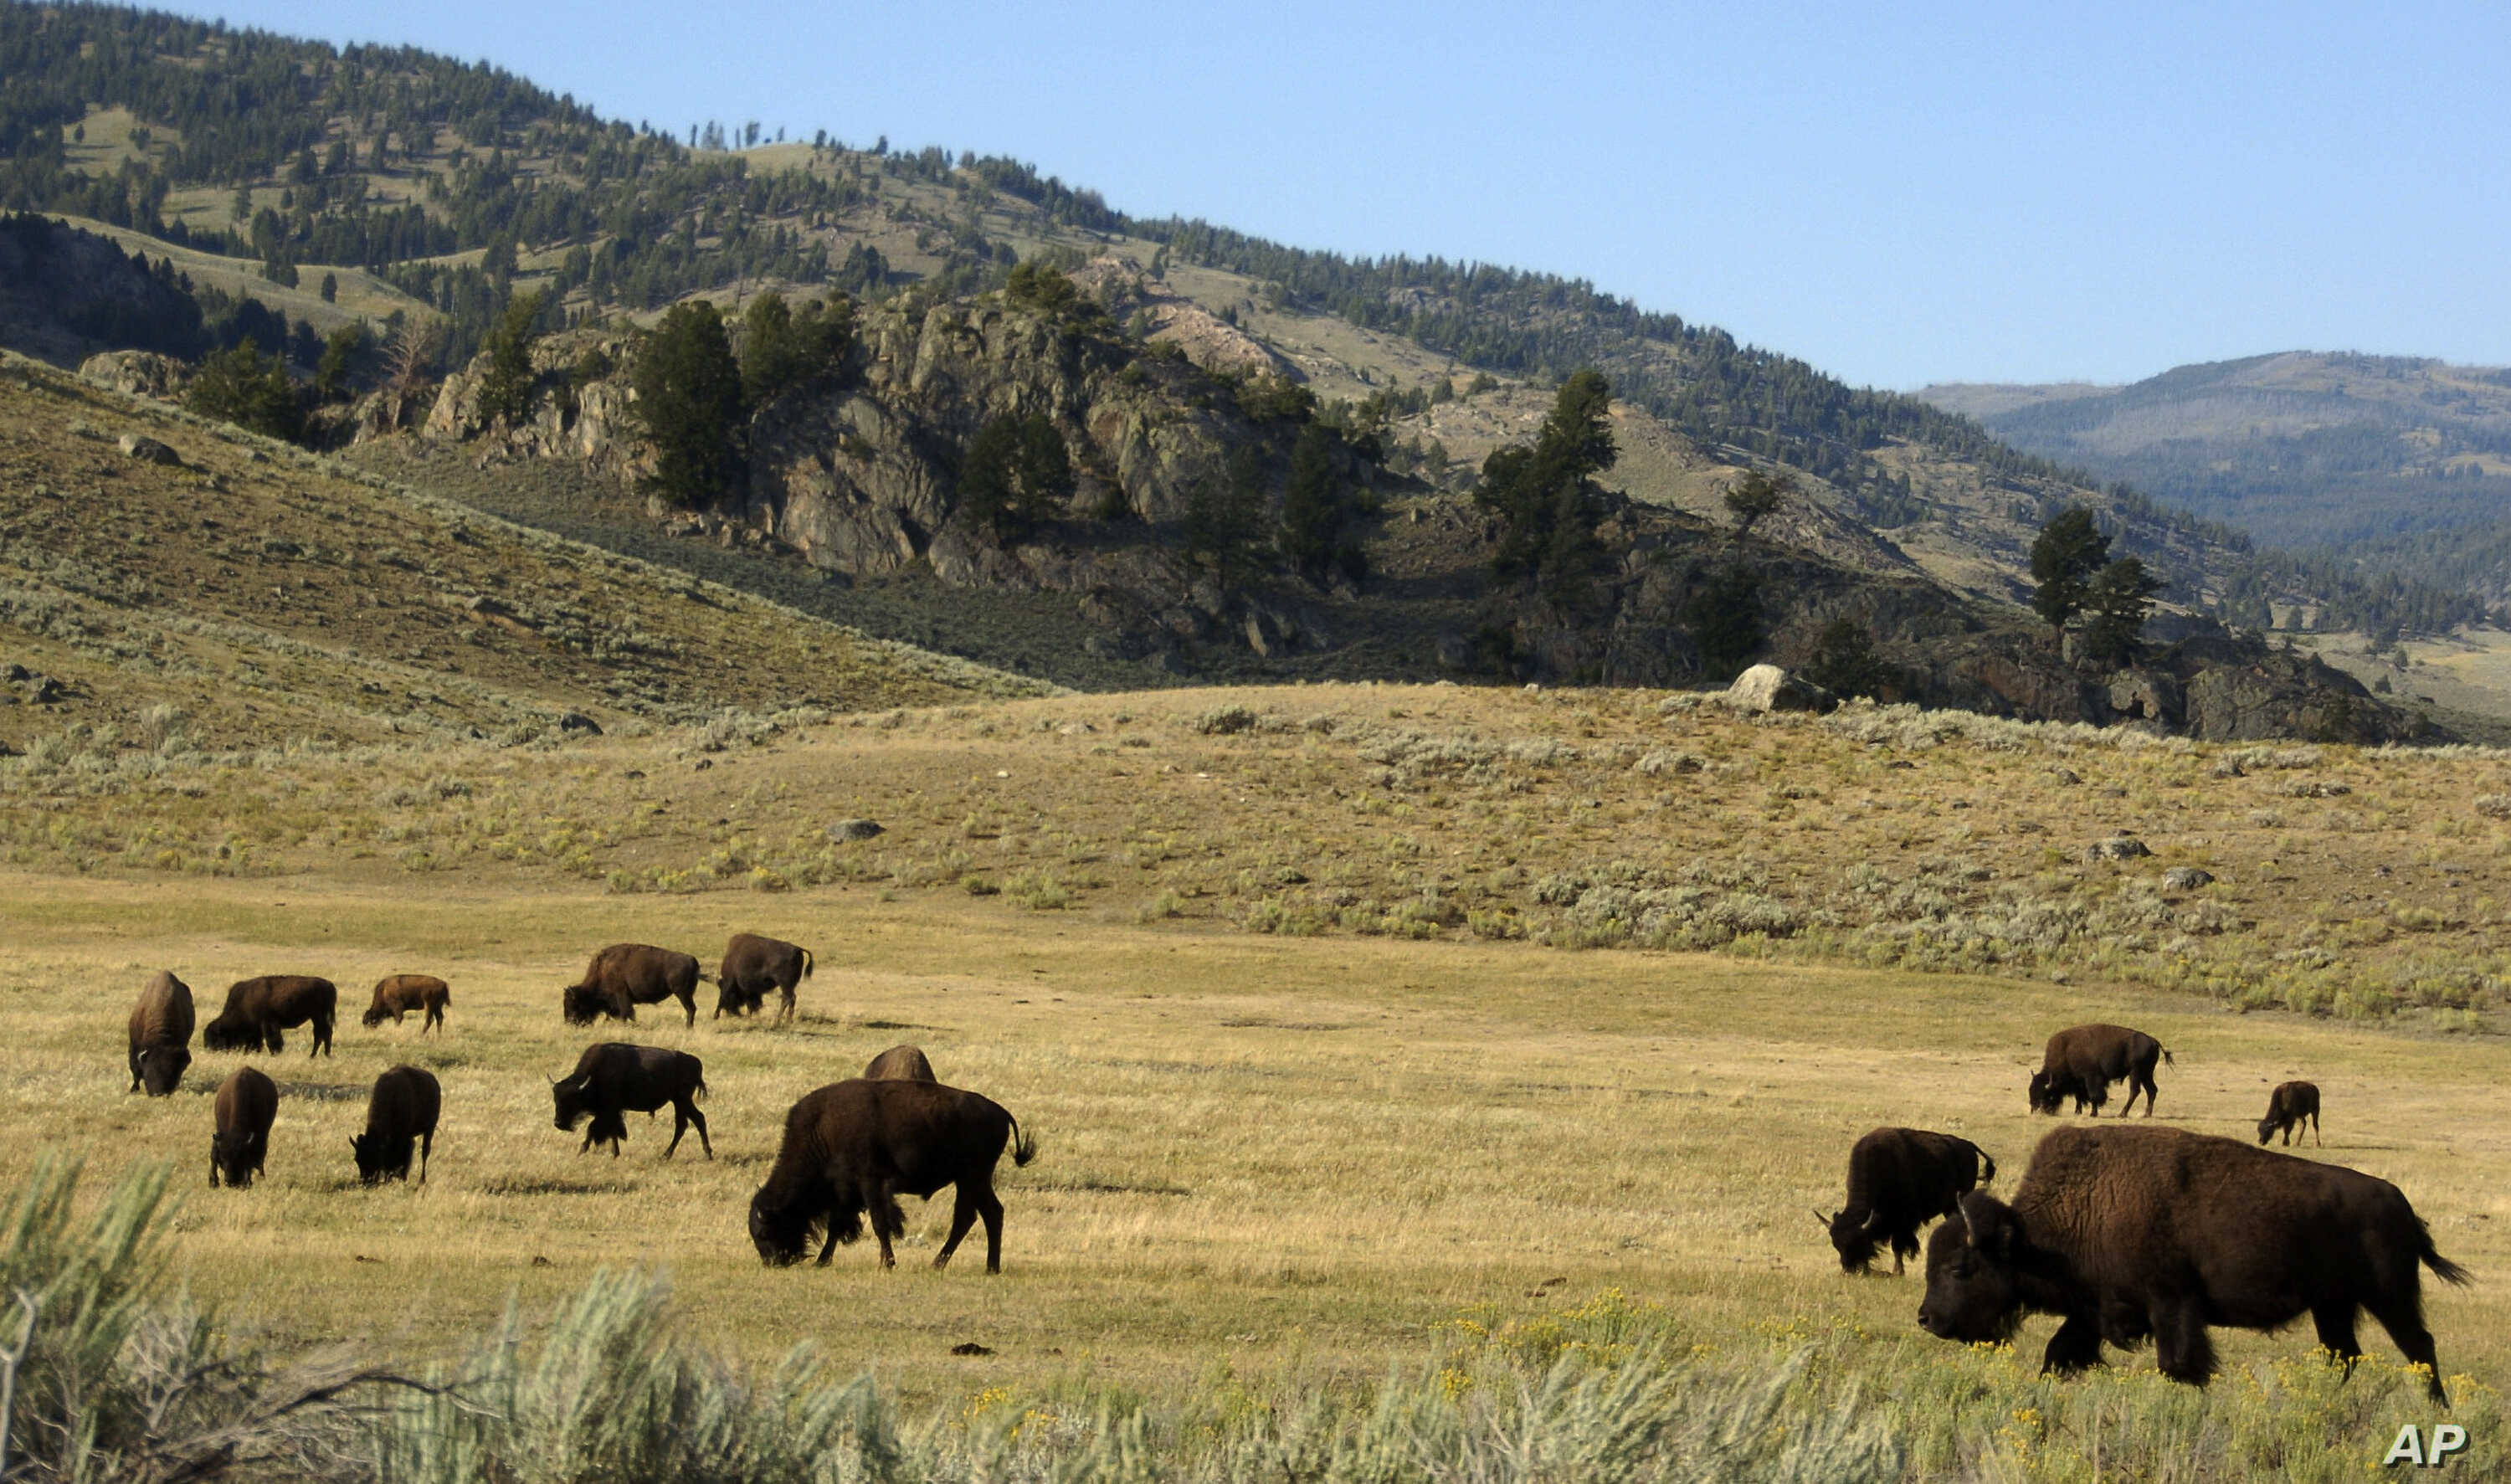 Yellowstone Ringing Phones: FILE - In this Aug. 3, 2016 file photo, a herd of bison grazes in the Lamar Valley of Yellowstone National Park in Wyo. Park administrators appear to have lost ground on a 2009 pledge to minimize cell phone access in backc